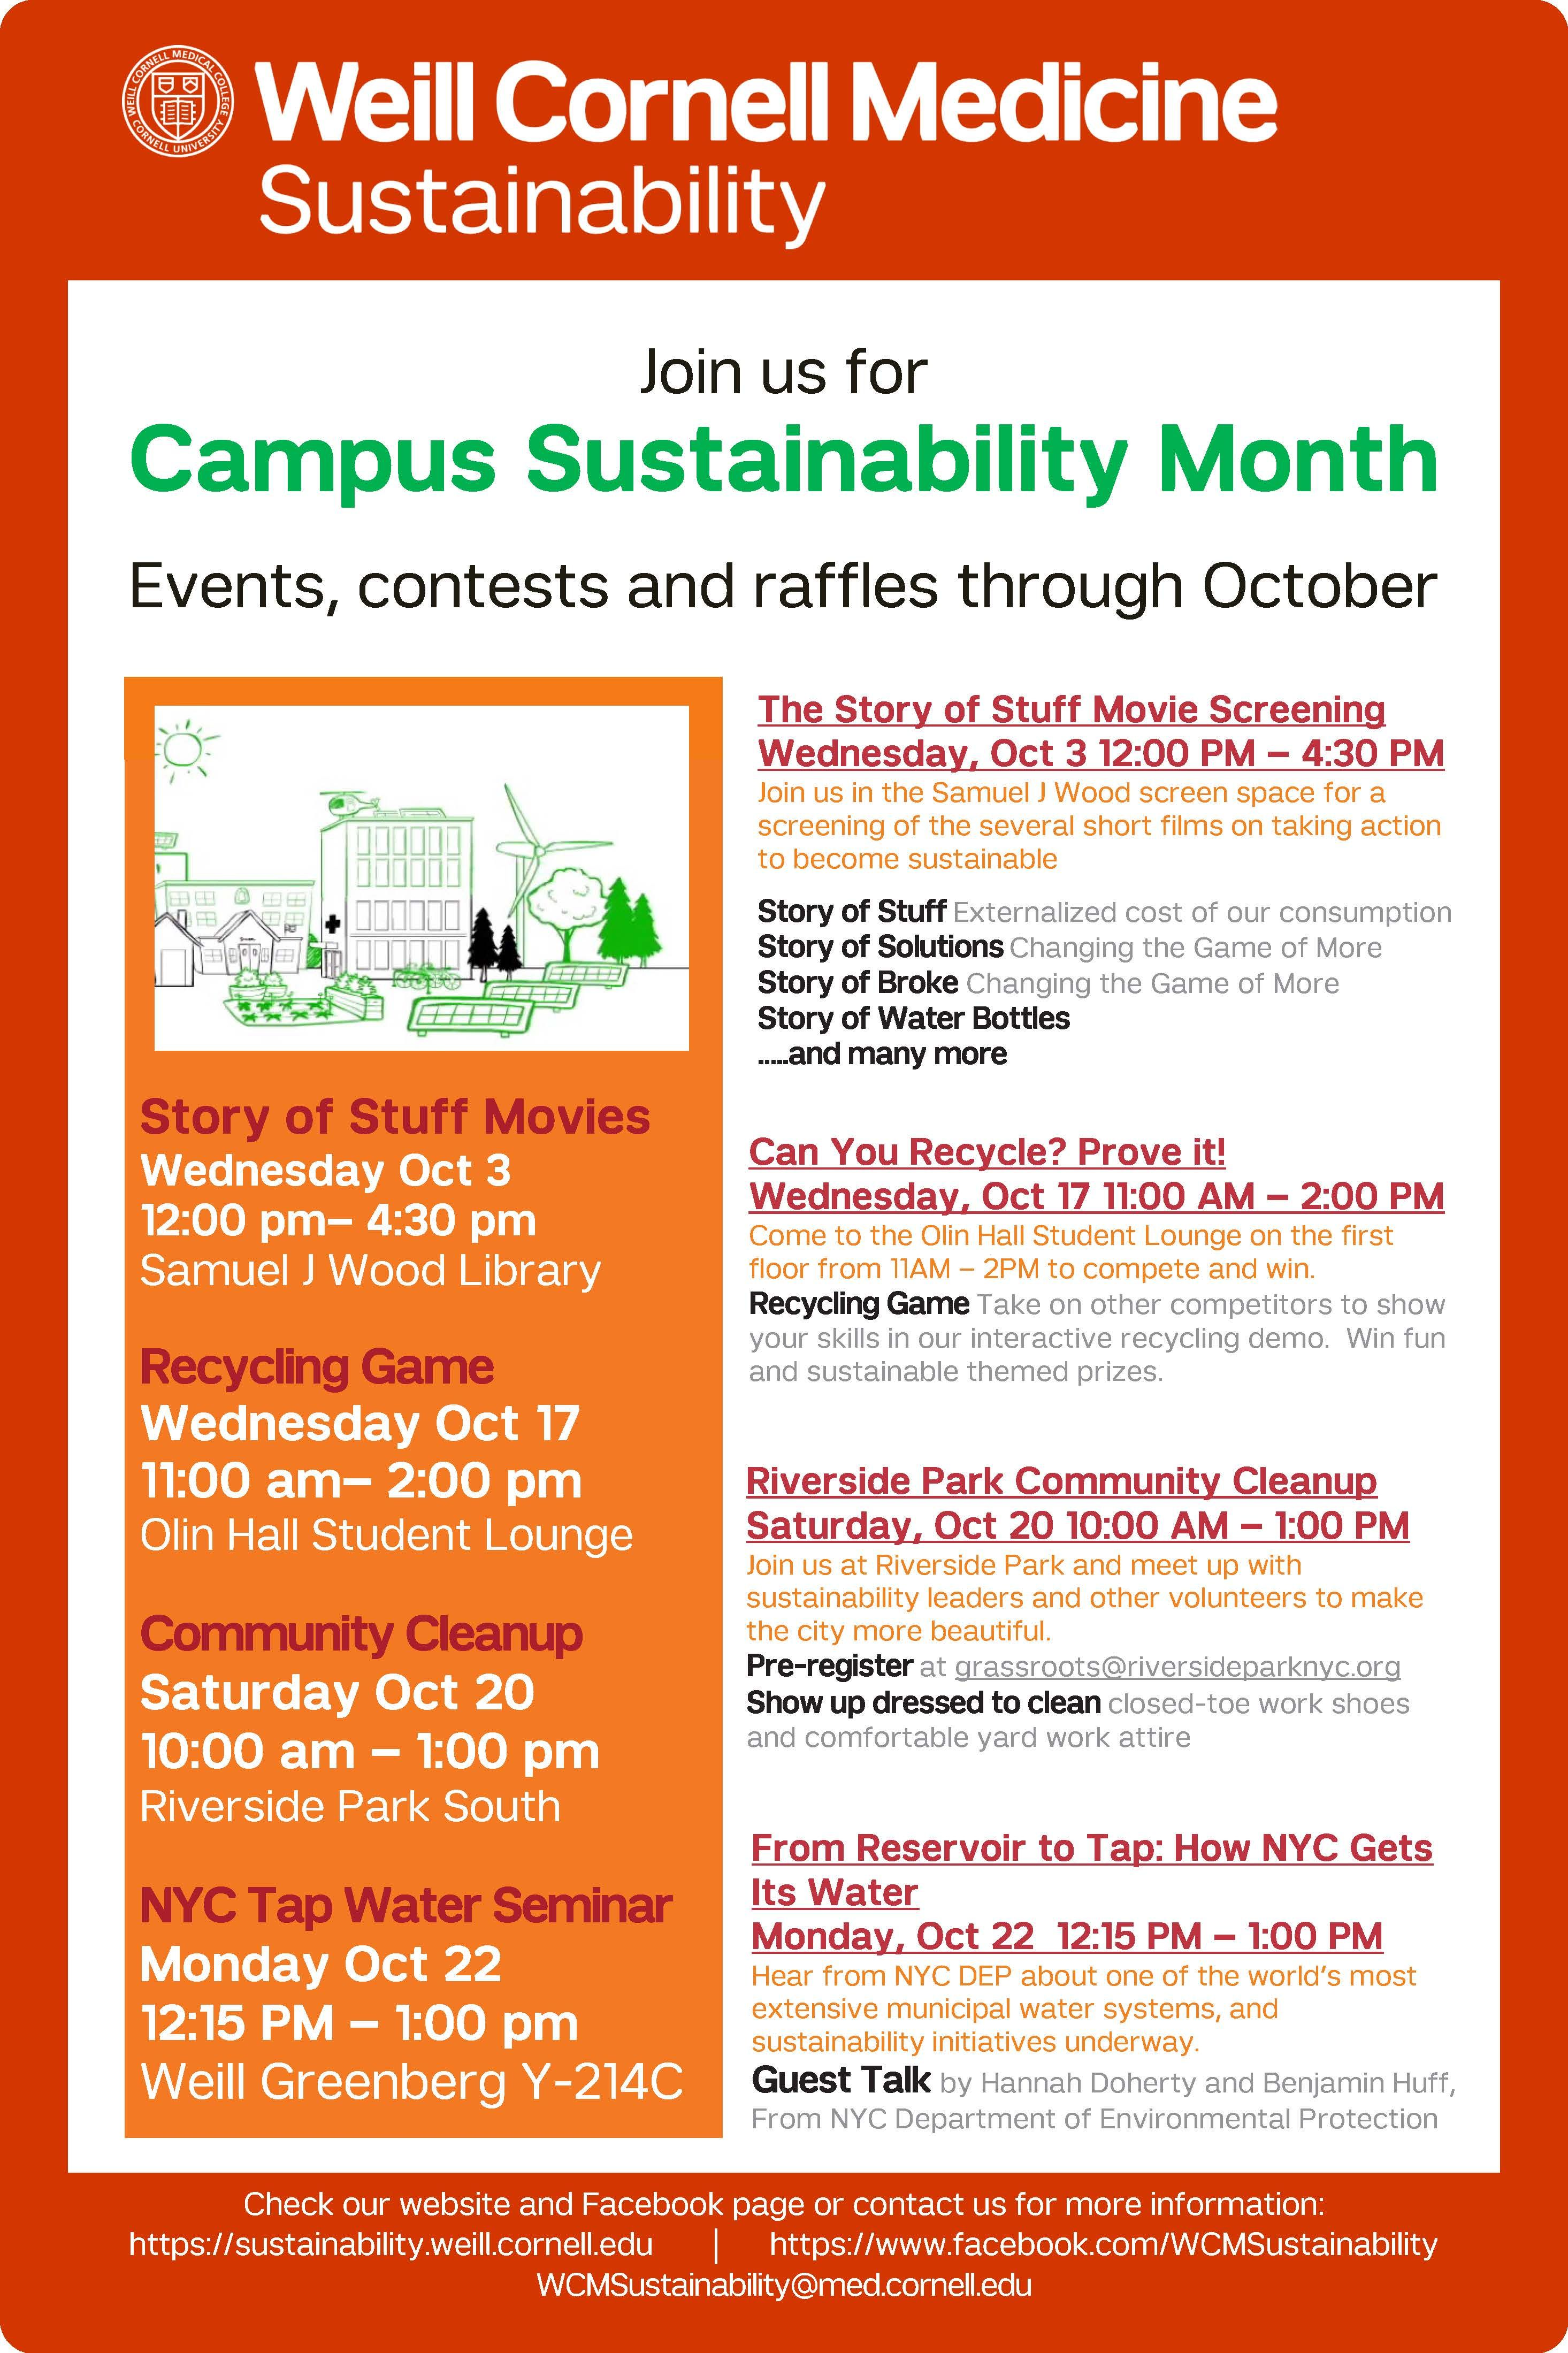 Campus Sustainability Month 2018 Events